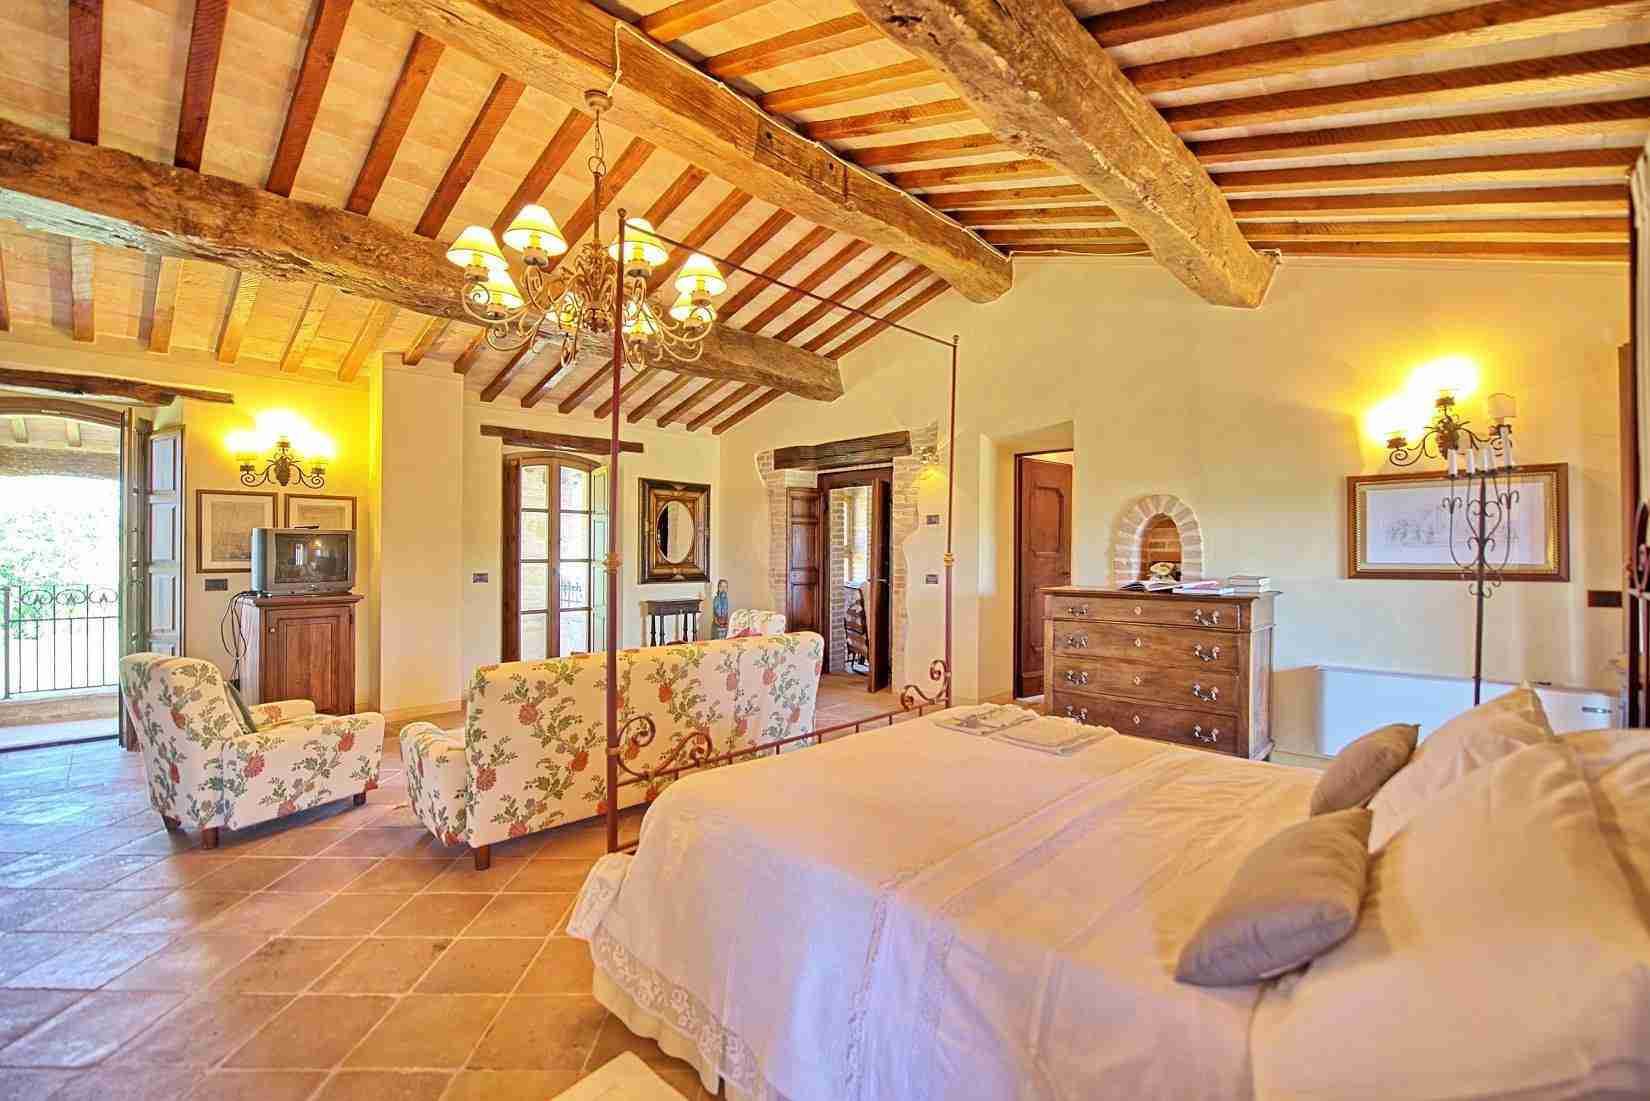 39 Assisi double bedroom